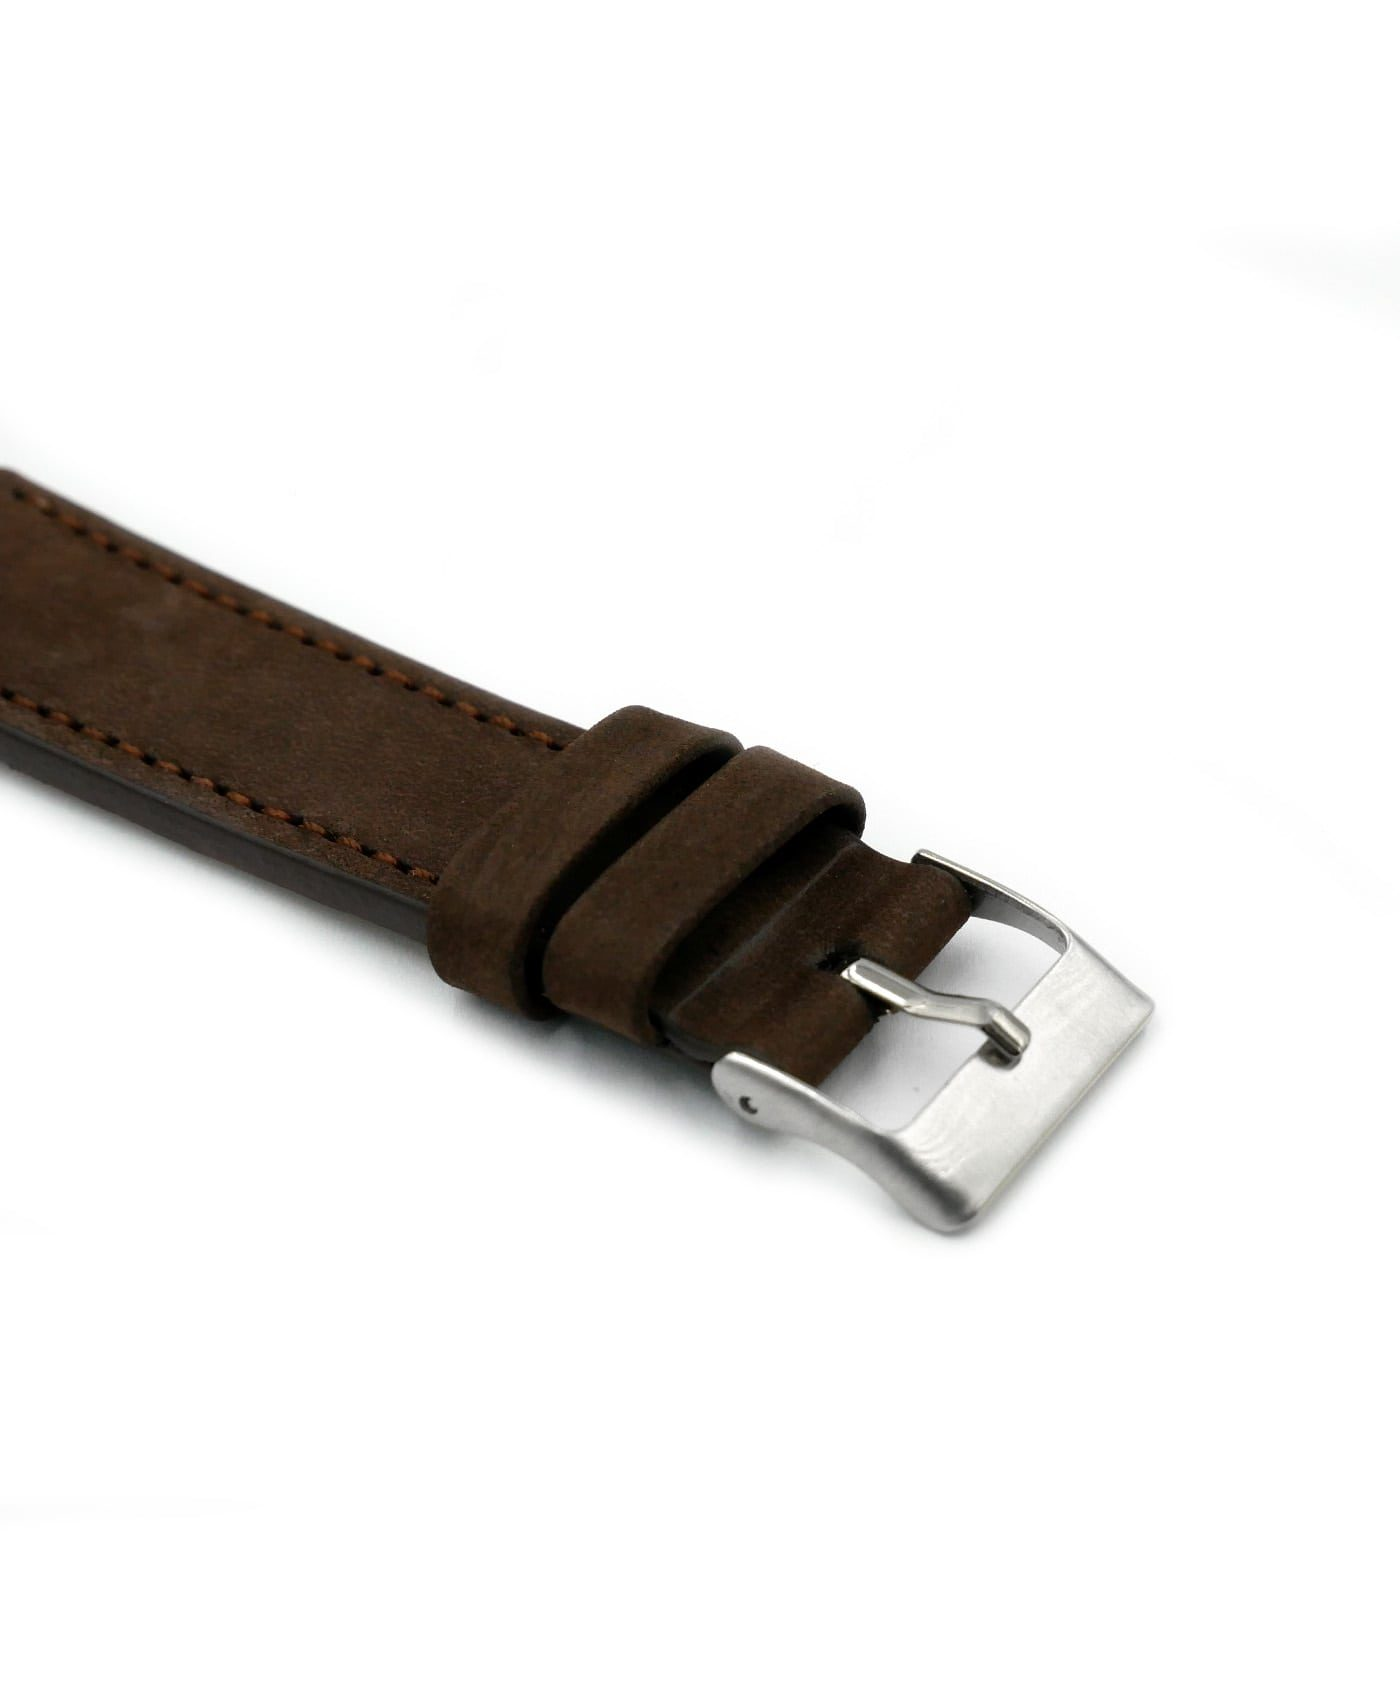 Pebro Premium Calfskin Watch Strap Coffee/Dark Brown No 579 buckle close up